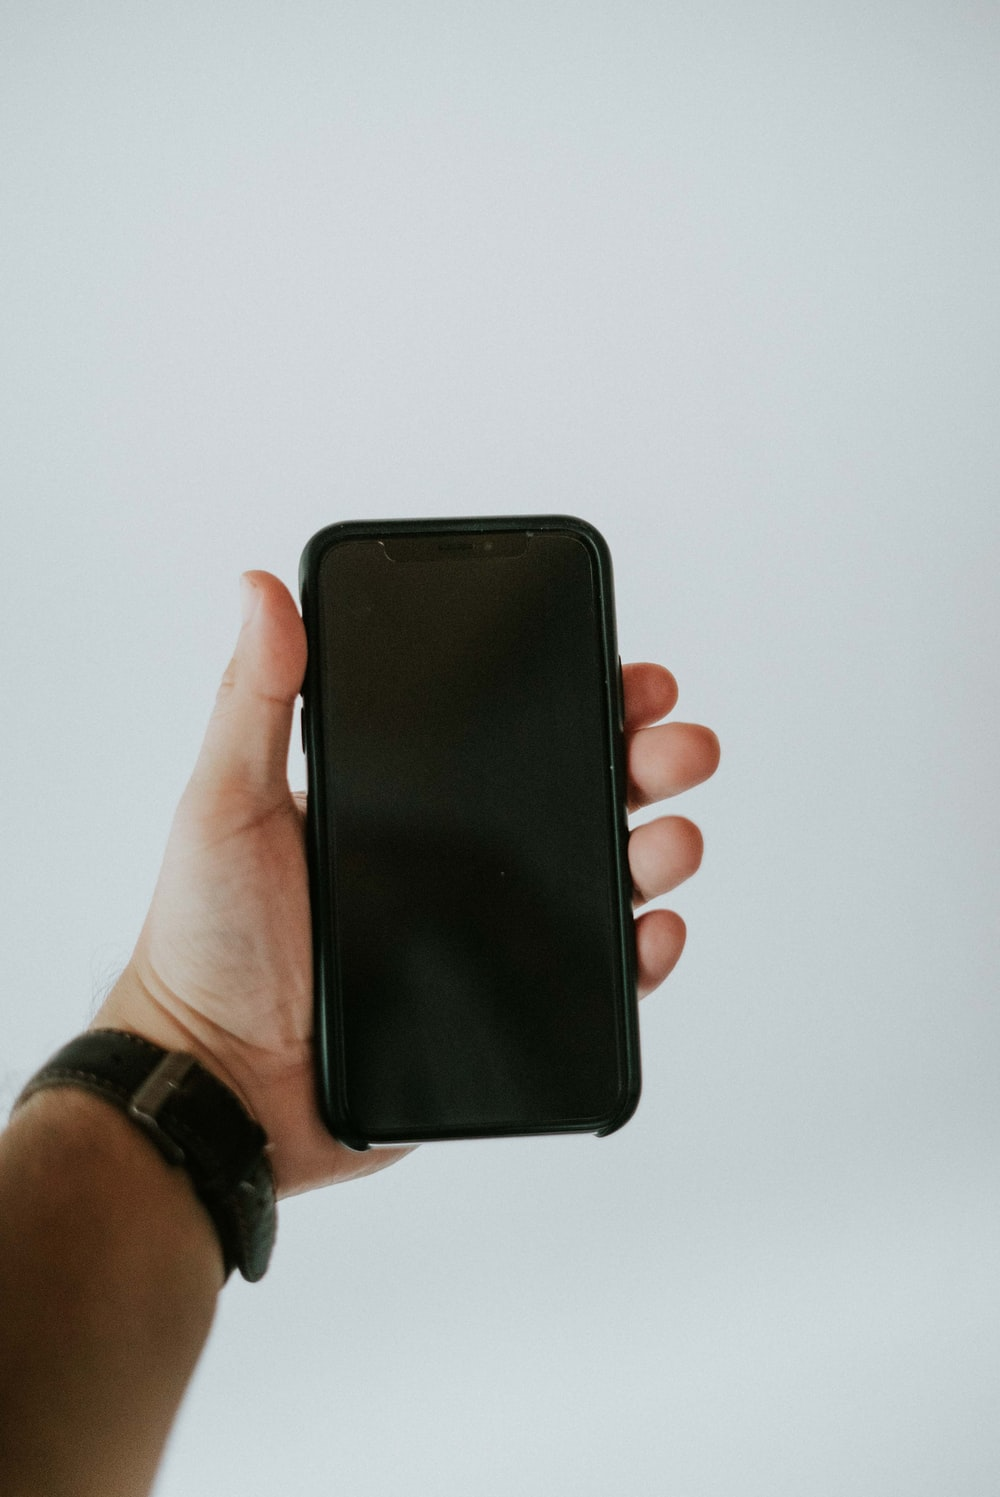 person holding black iphone 5 c